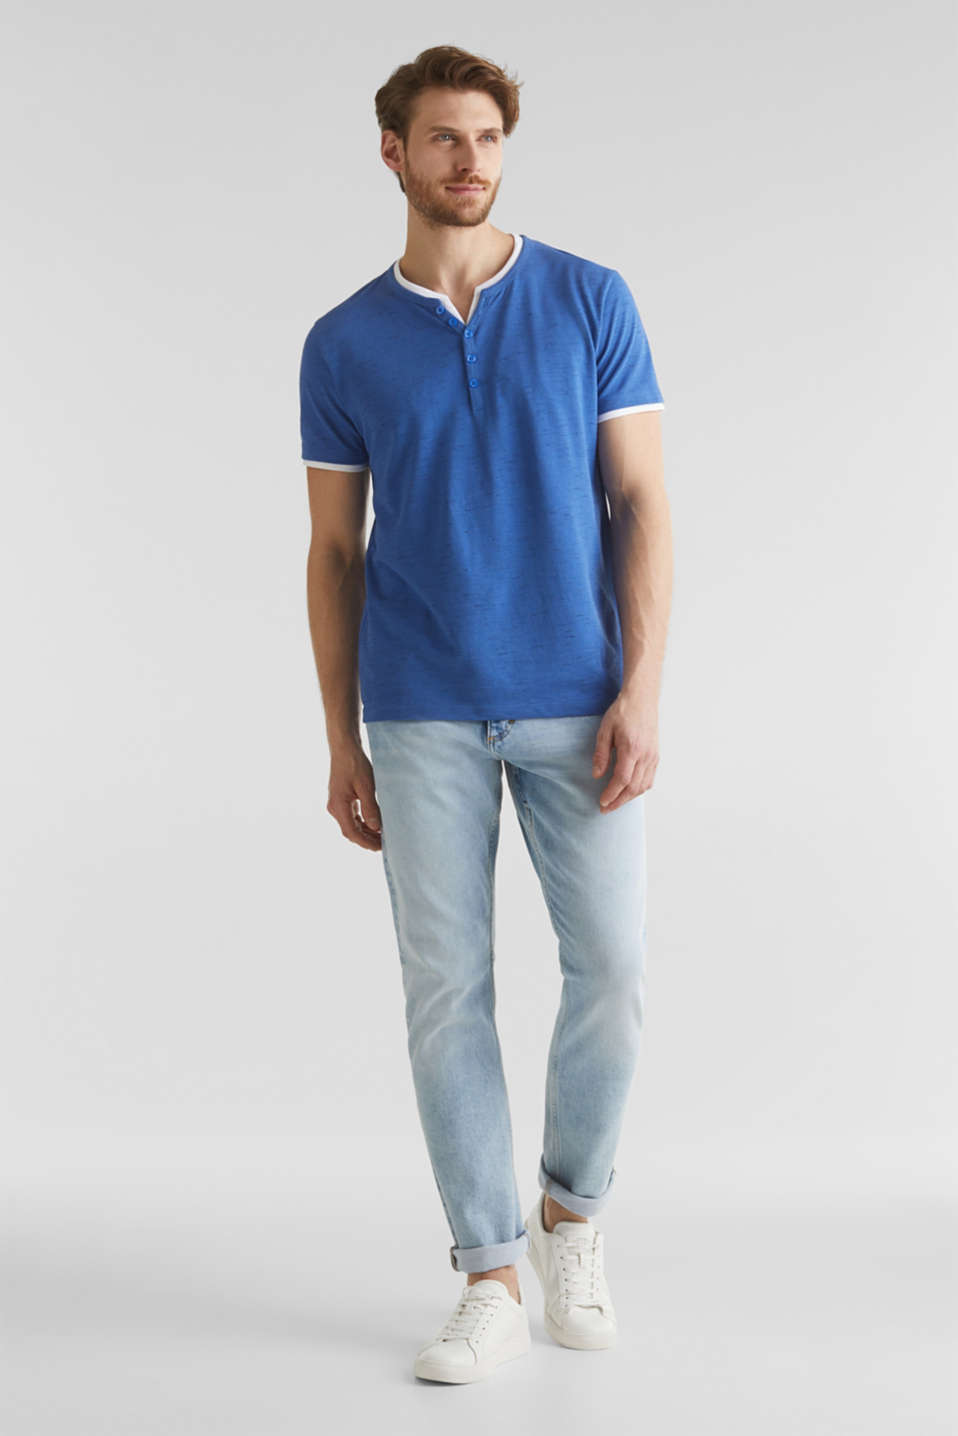 Piqué T-shirt in a layered look, BLUE 5, detail image number 1